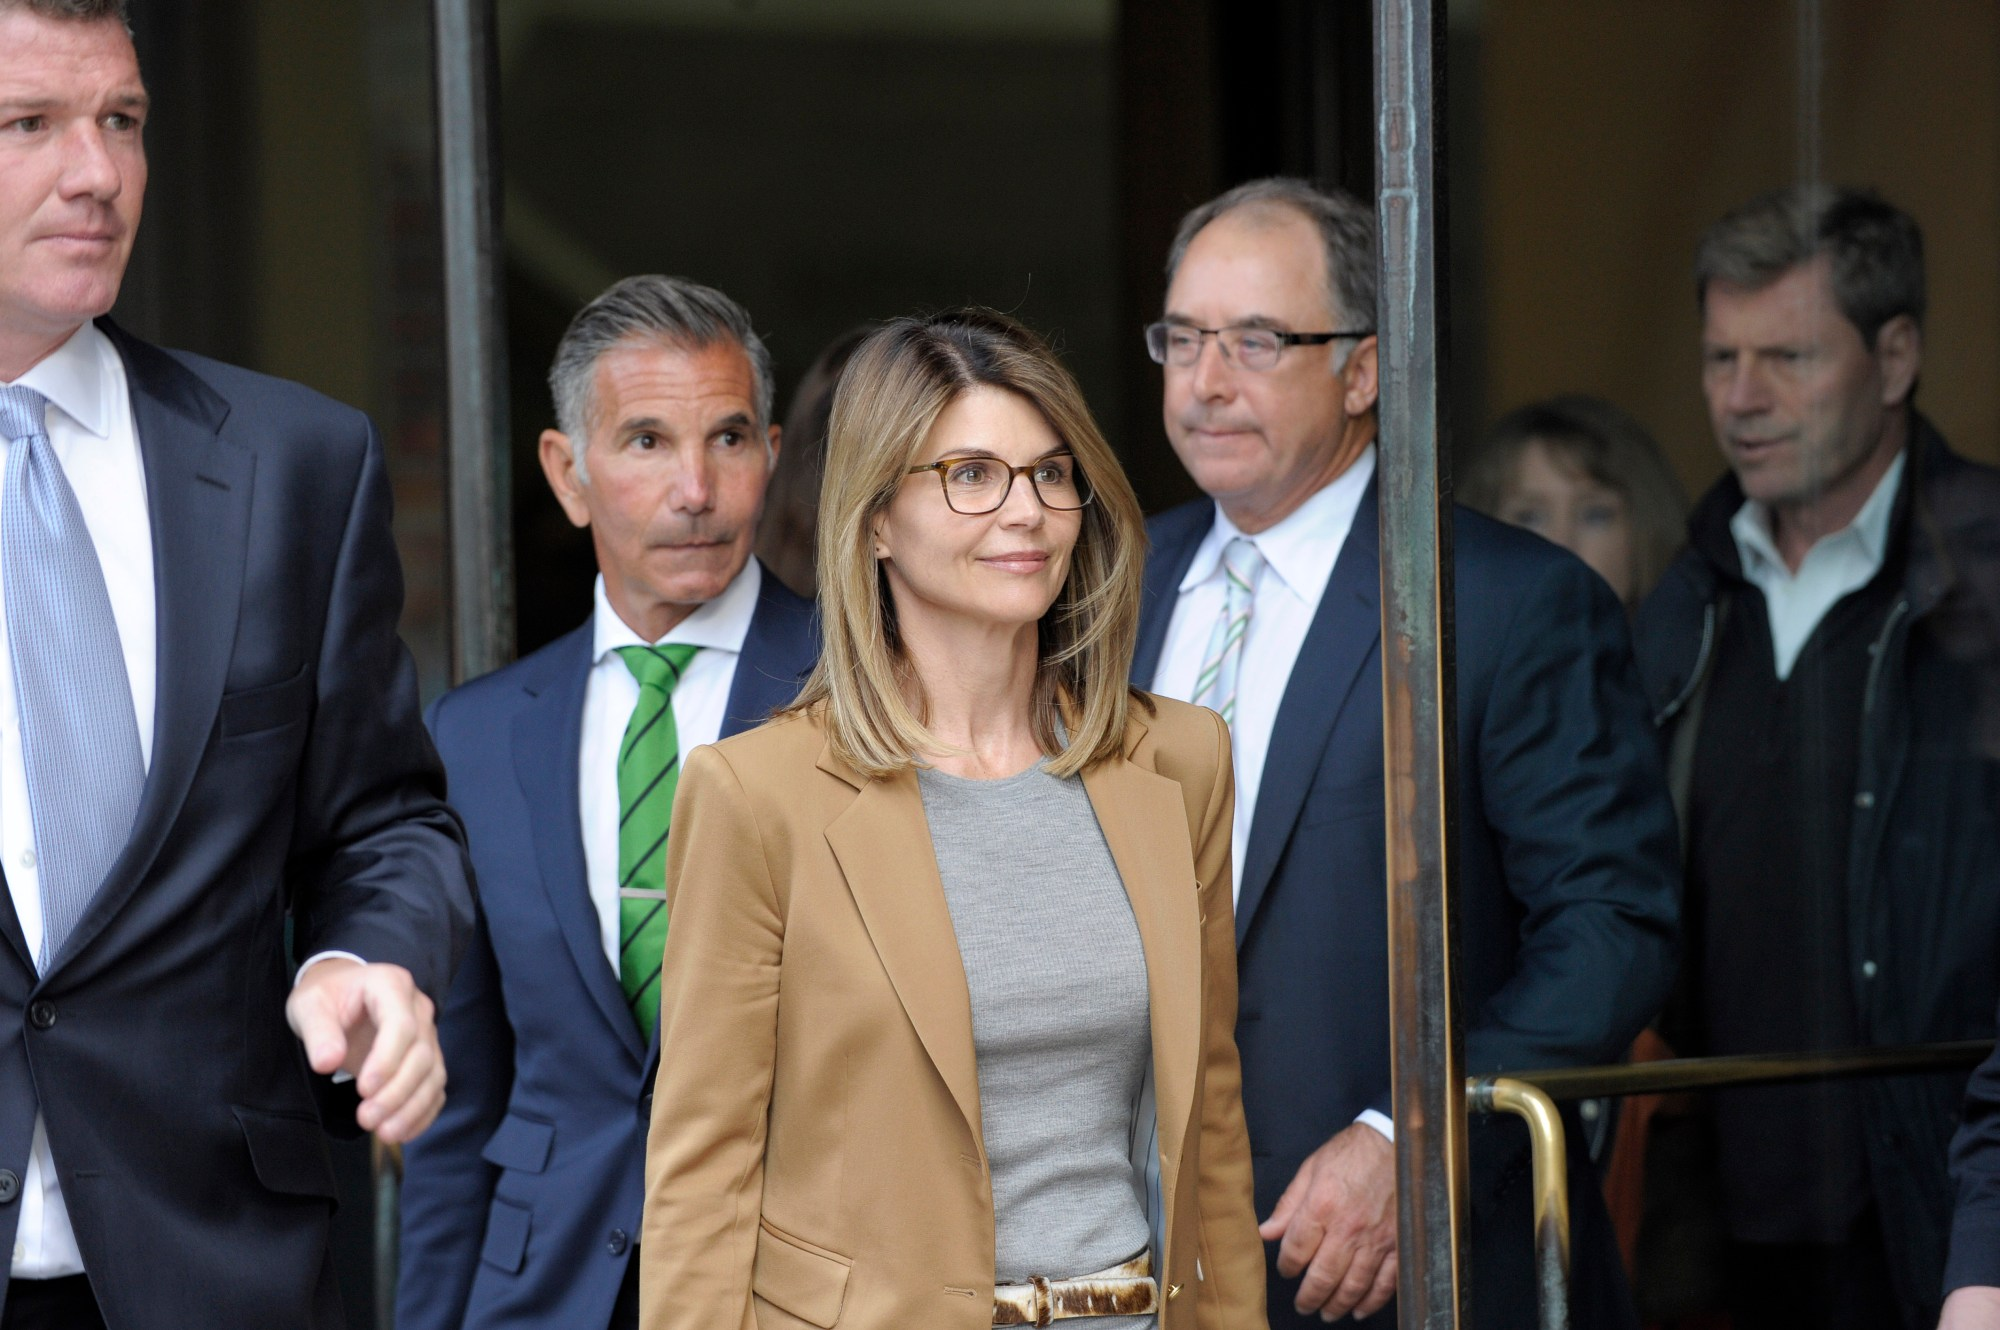 Actress Lori Loughlin exits the courthouse after facing charges for allegedly conspiring to commit mail fraud and other charges in the college admissions scandal at the John Joseph Moakley United States Courthouse in Boston on April 3, 2019. (Credit:JOSEPH PREZIOSO/AFP/Getty Images)